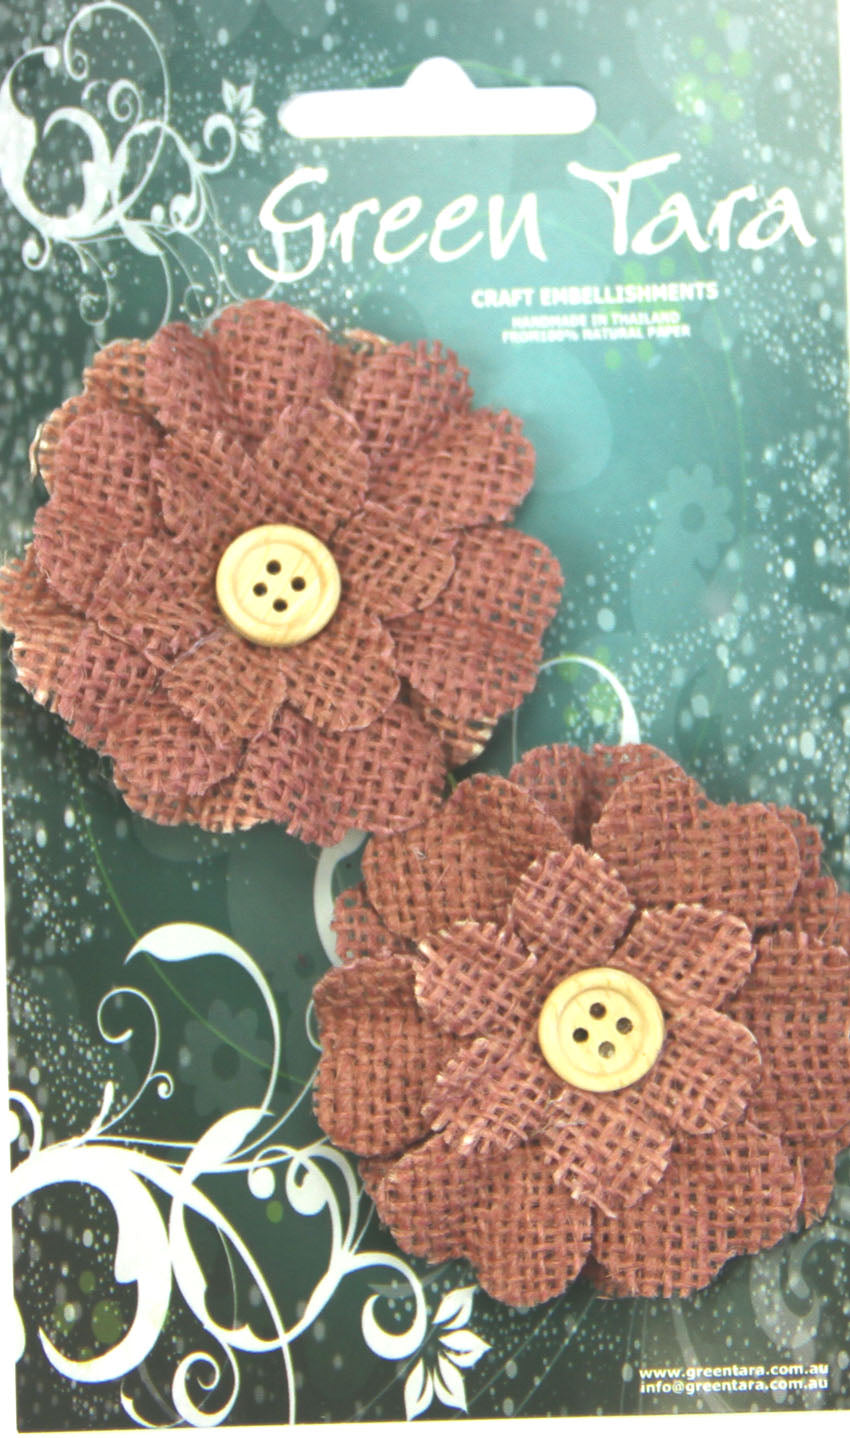 Green Tara Flower Pack - Burlap Brown